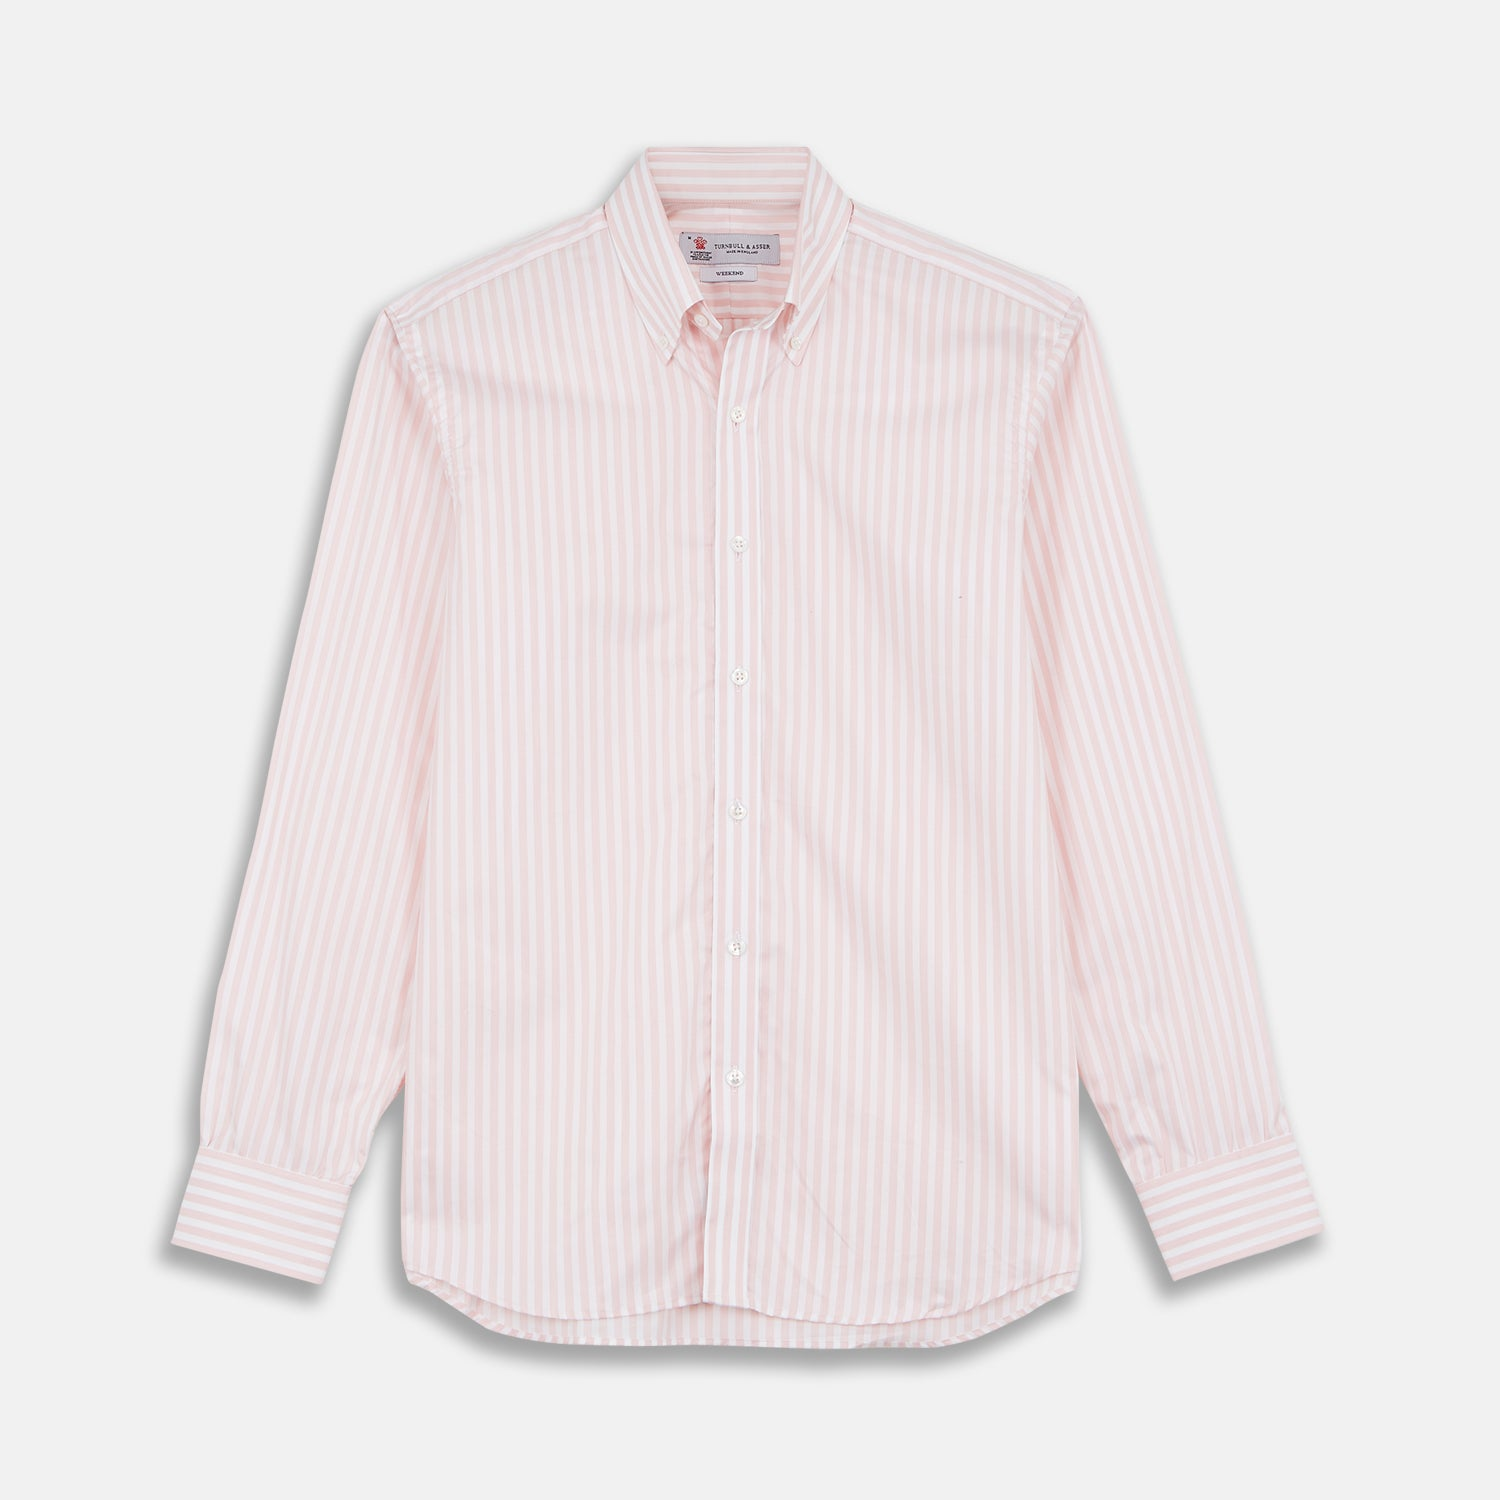 Weekend Fit Pink Stripe Cotton Shirt with Dorset Collar and 1-Button Cuffs